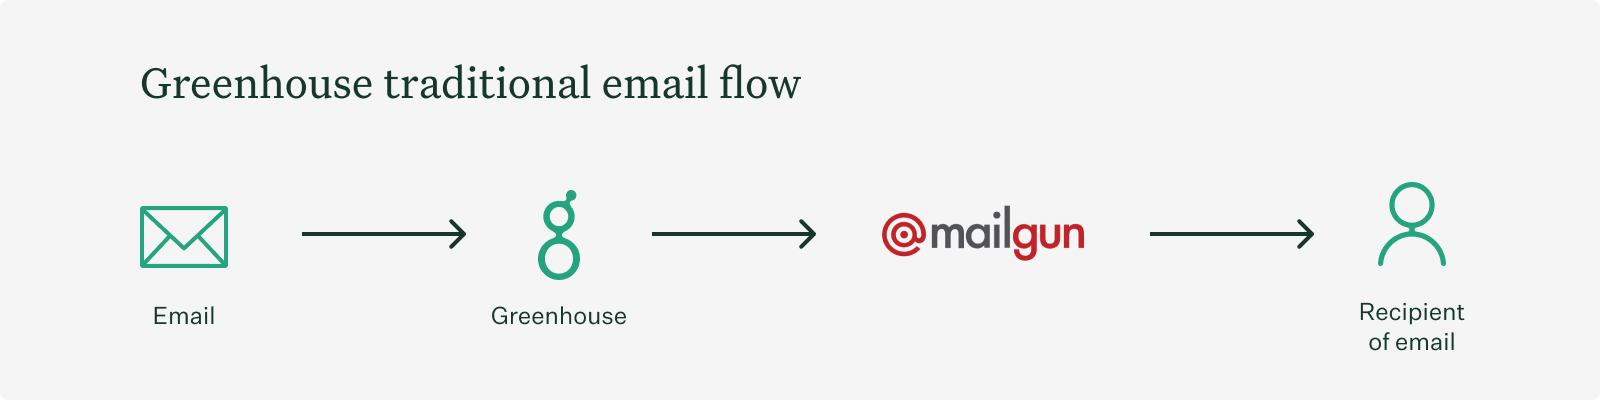 traditional-email-flow.png